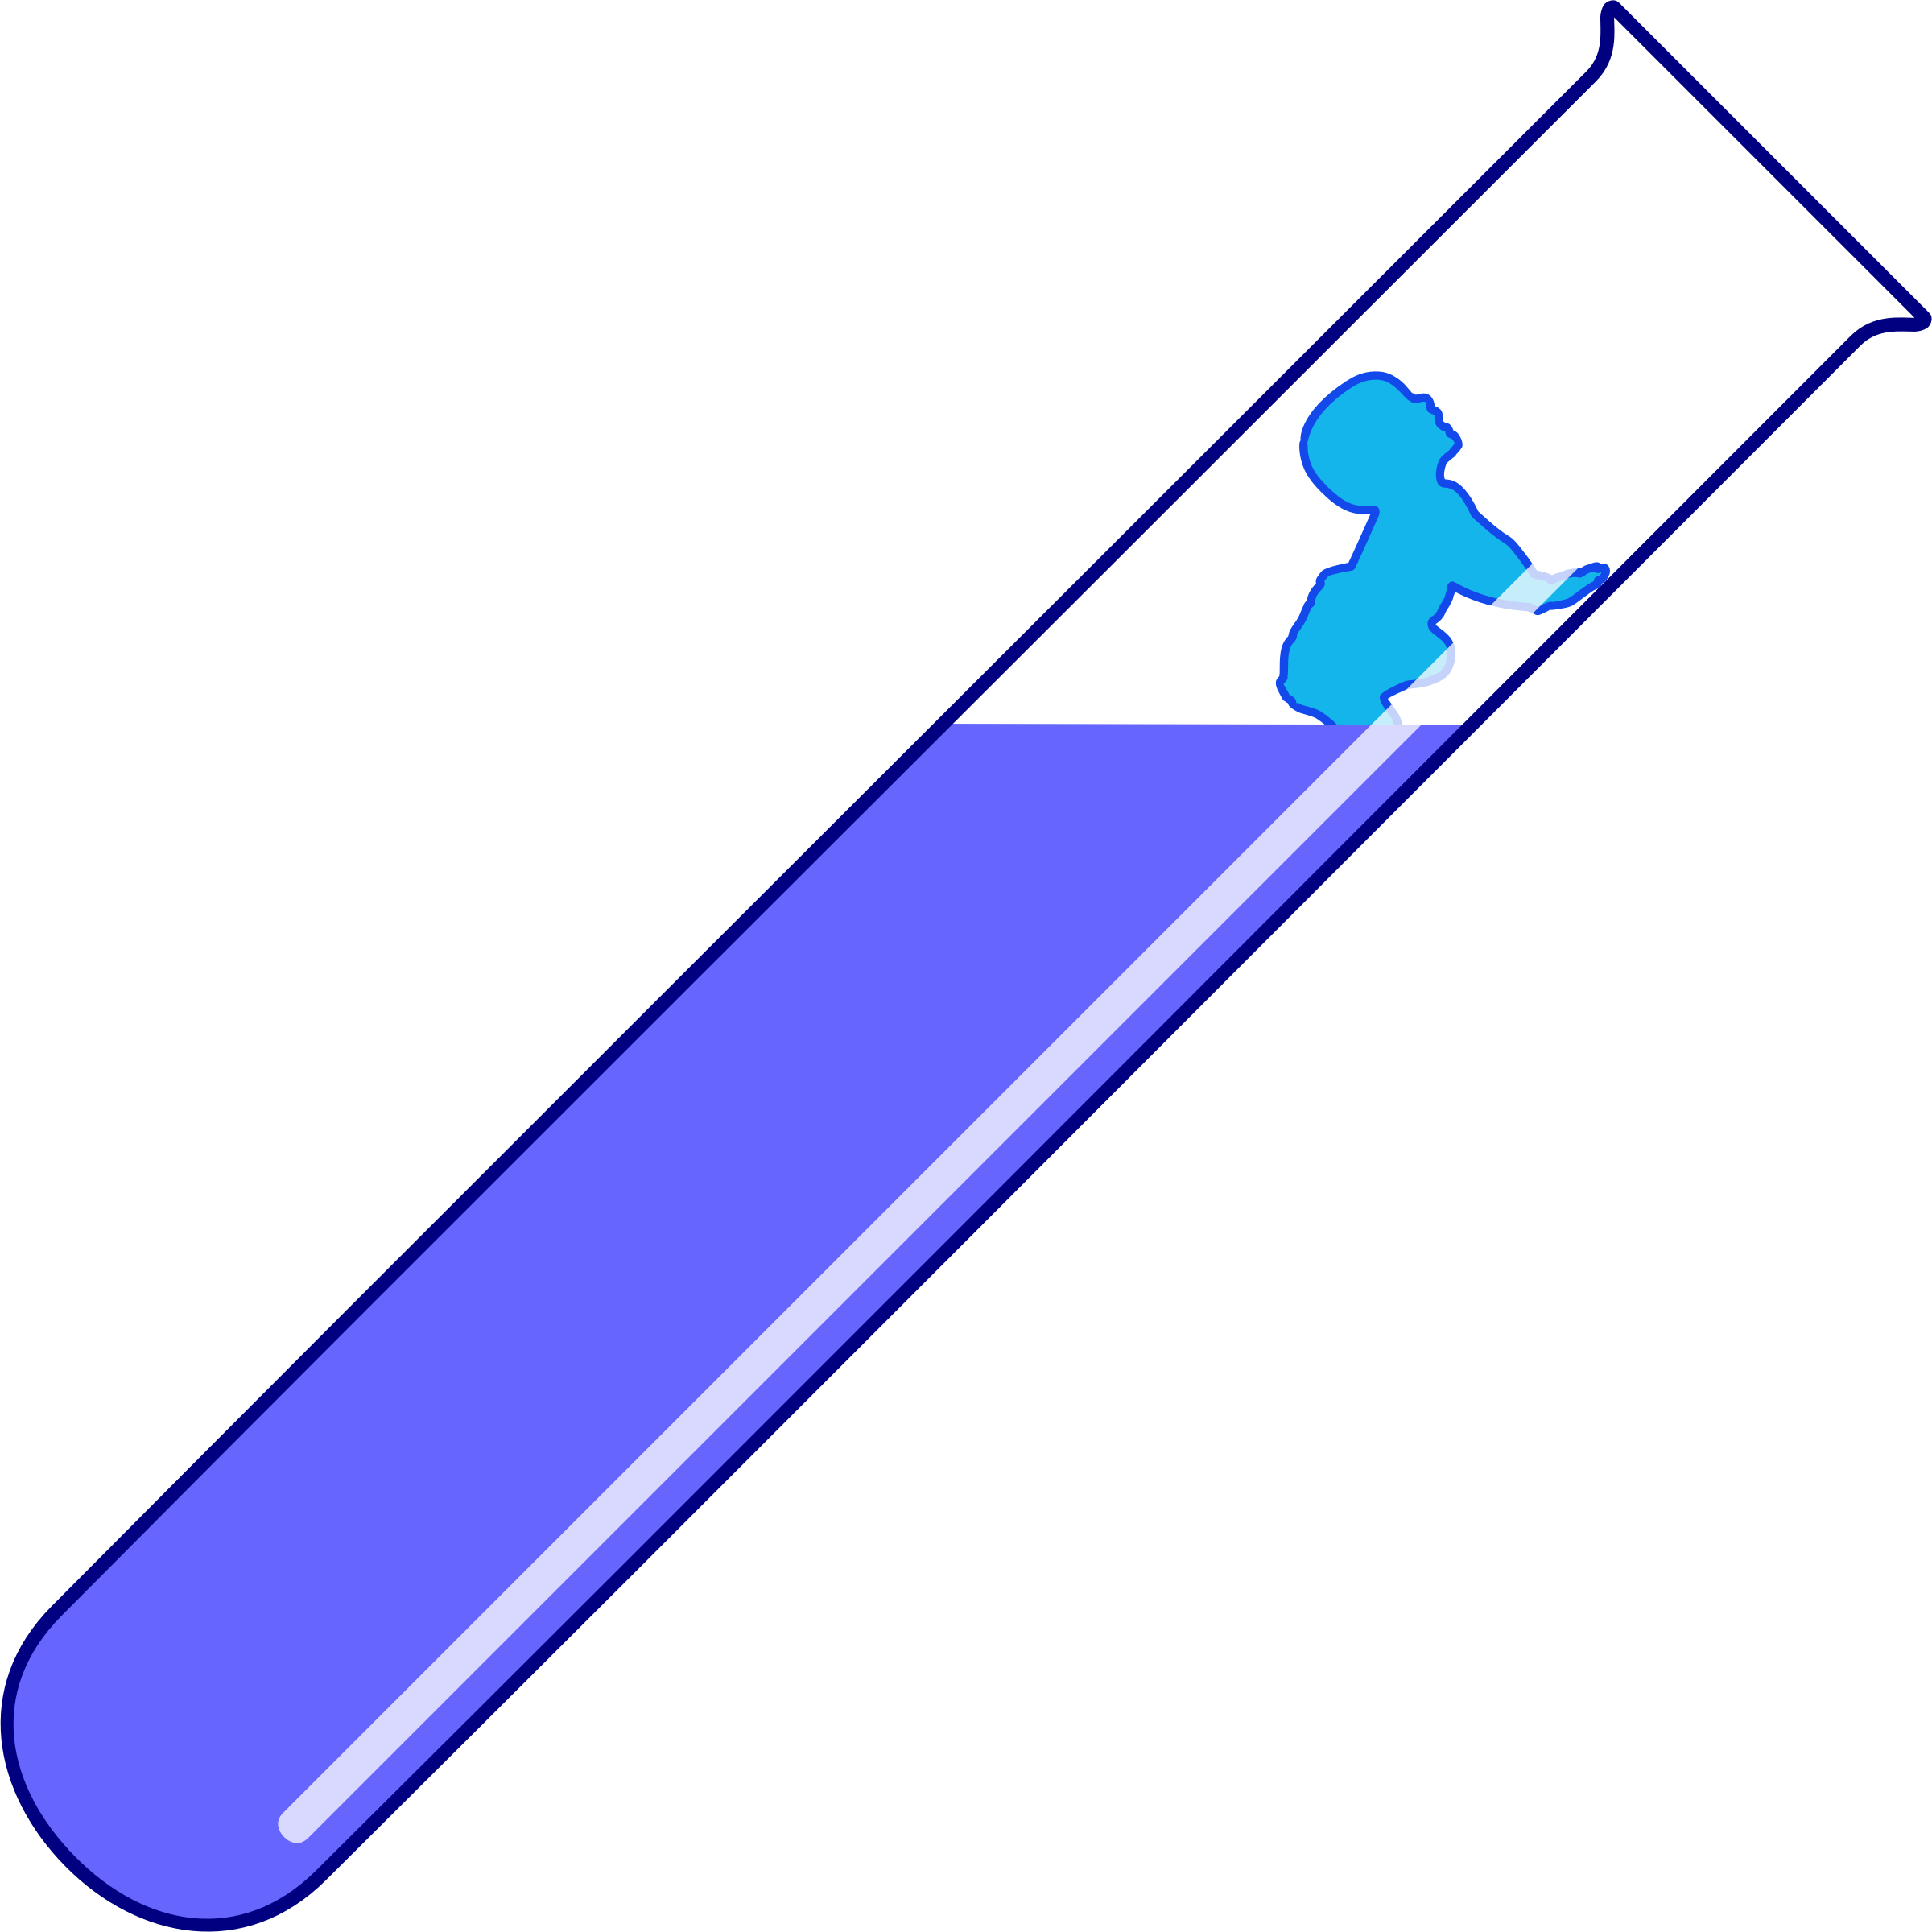 drawing of a test tube, tilted diagonally, with a blue baby crawling out of a purple liquid